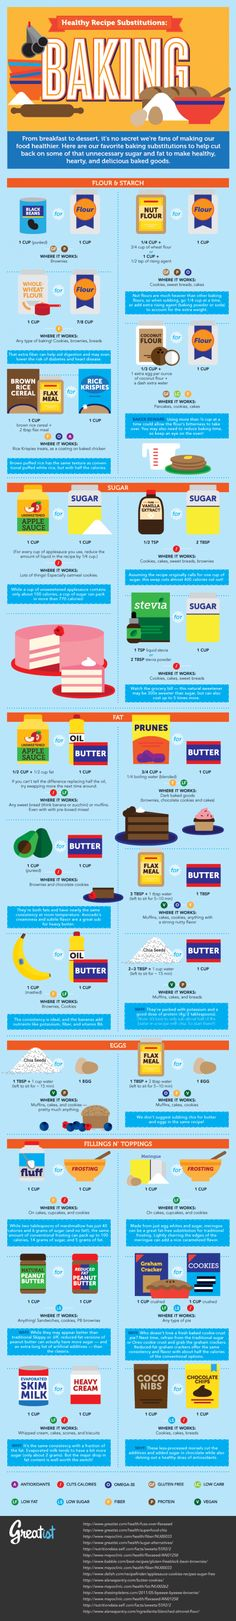 The Ultimate Guide to Healthier Baking